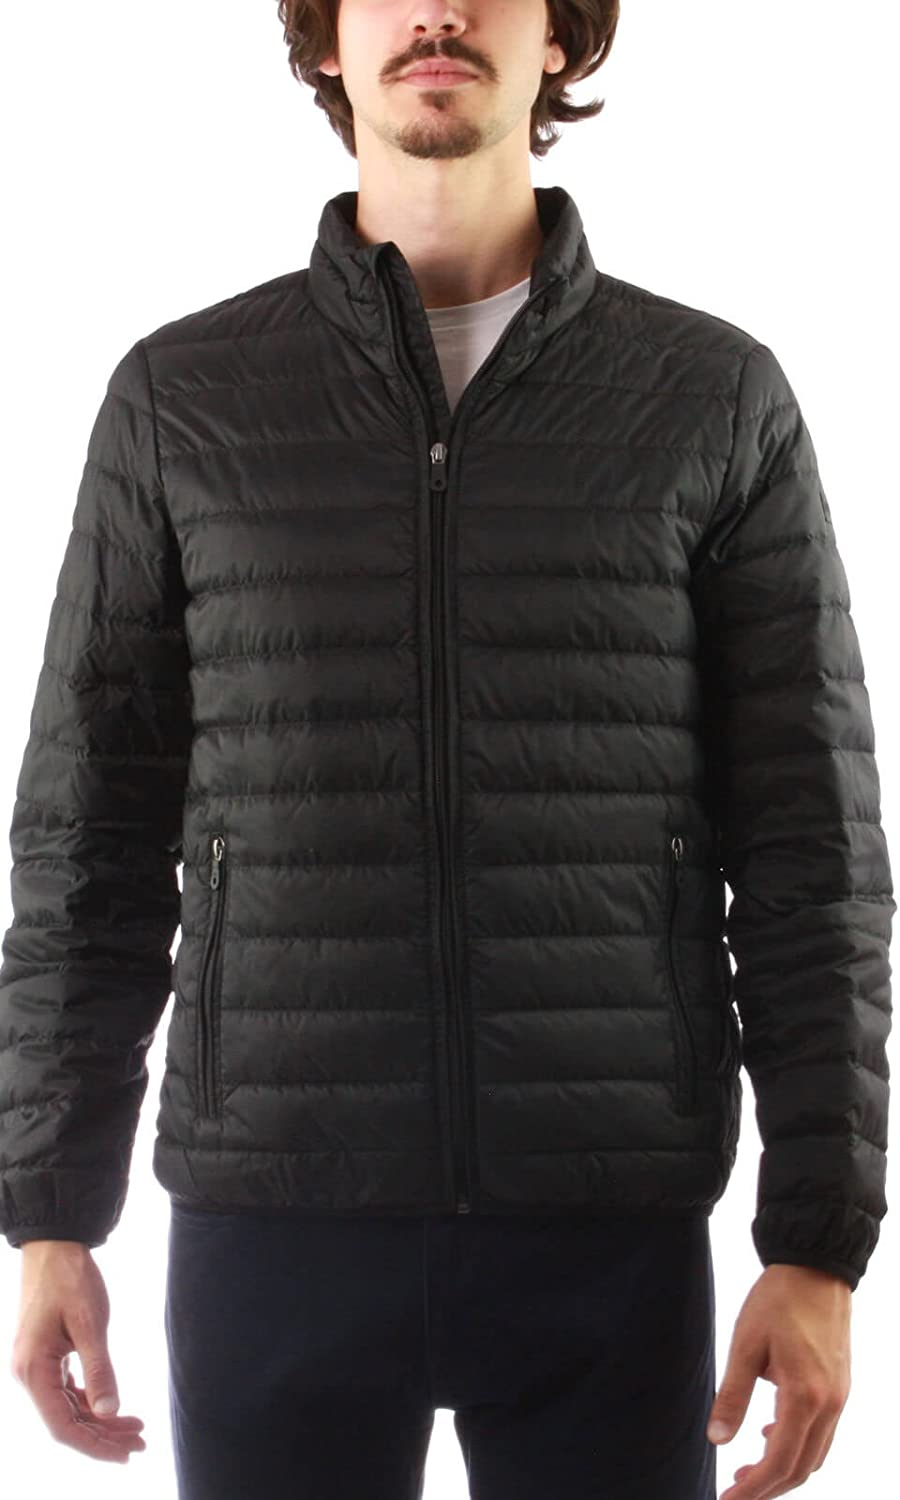 Armani Jeans Men's Packable Superior Down High material Black Jacket Large